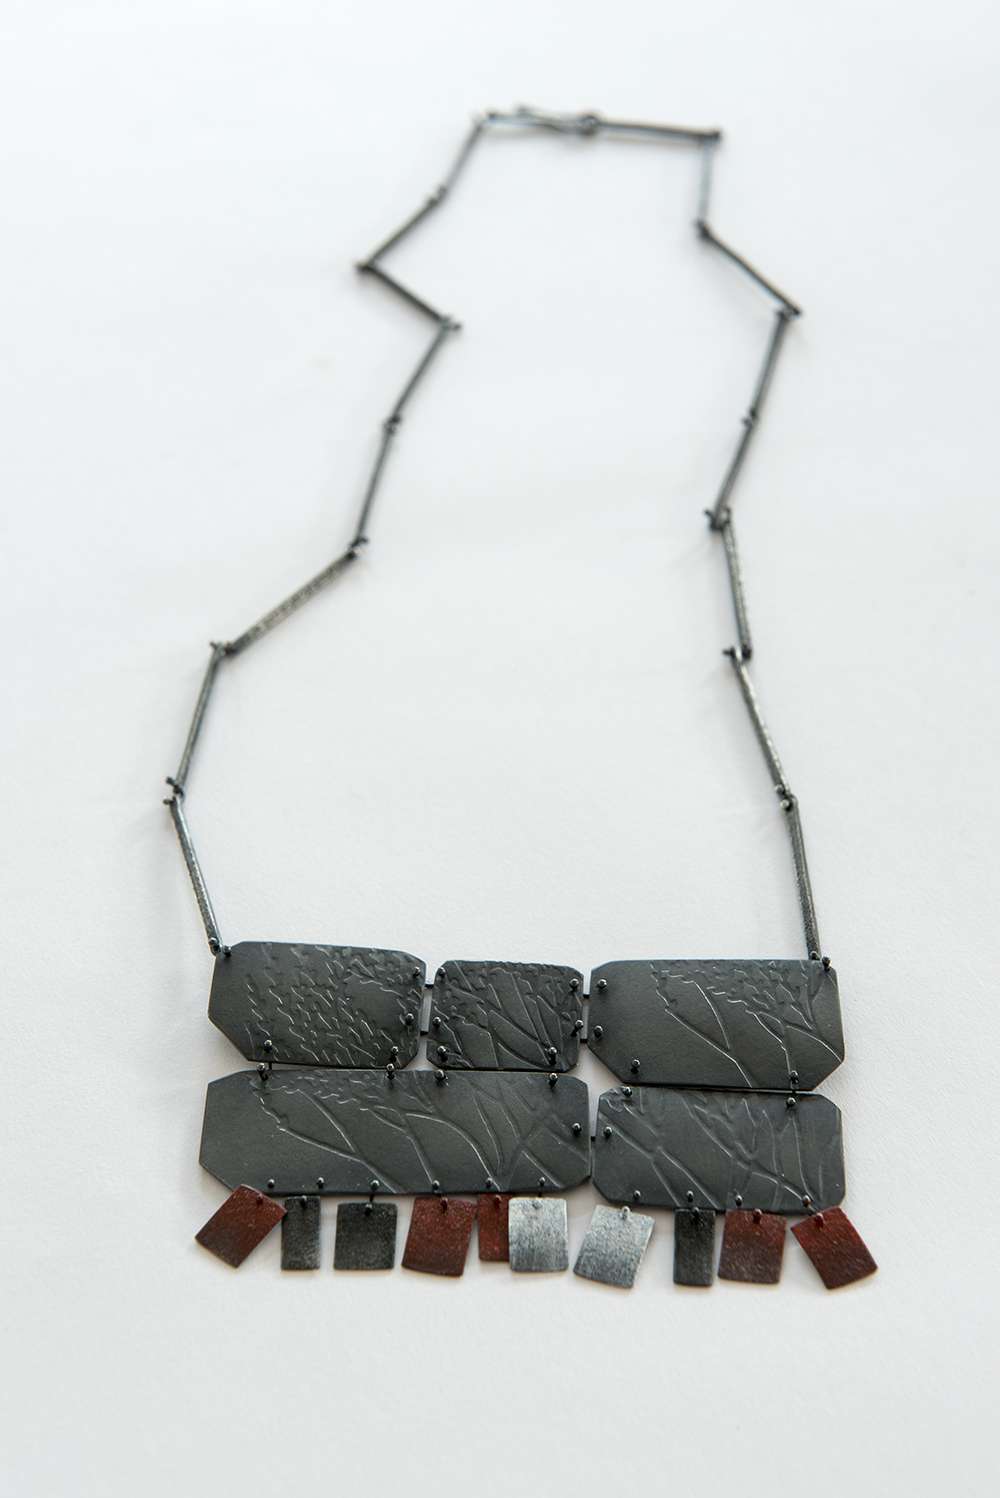 sprawl-neckpiece-oxidised-sterling-silver-enamel-paint-350mm-by-100-mm.jpg